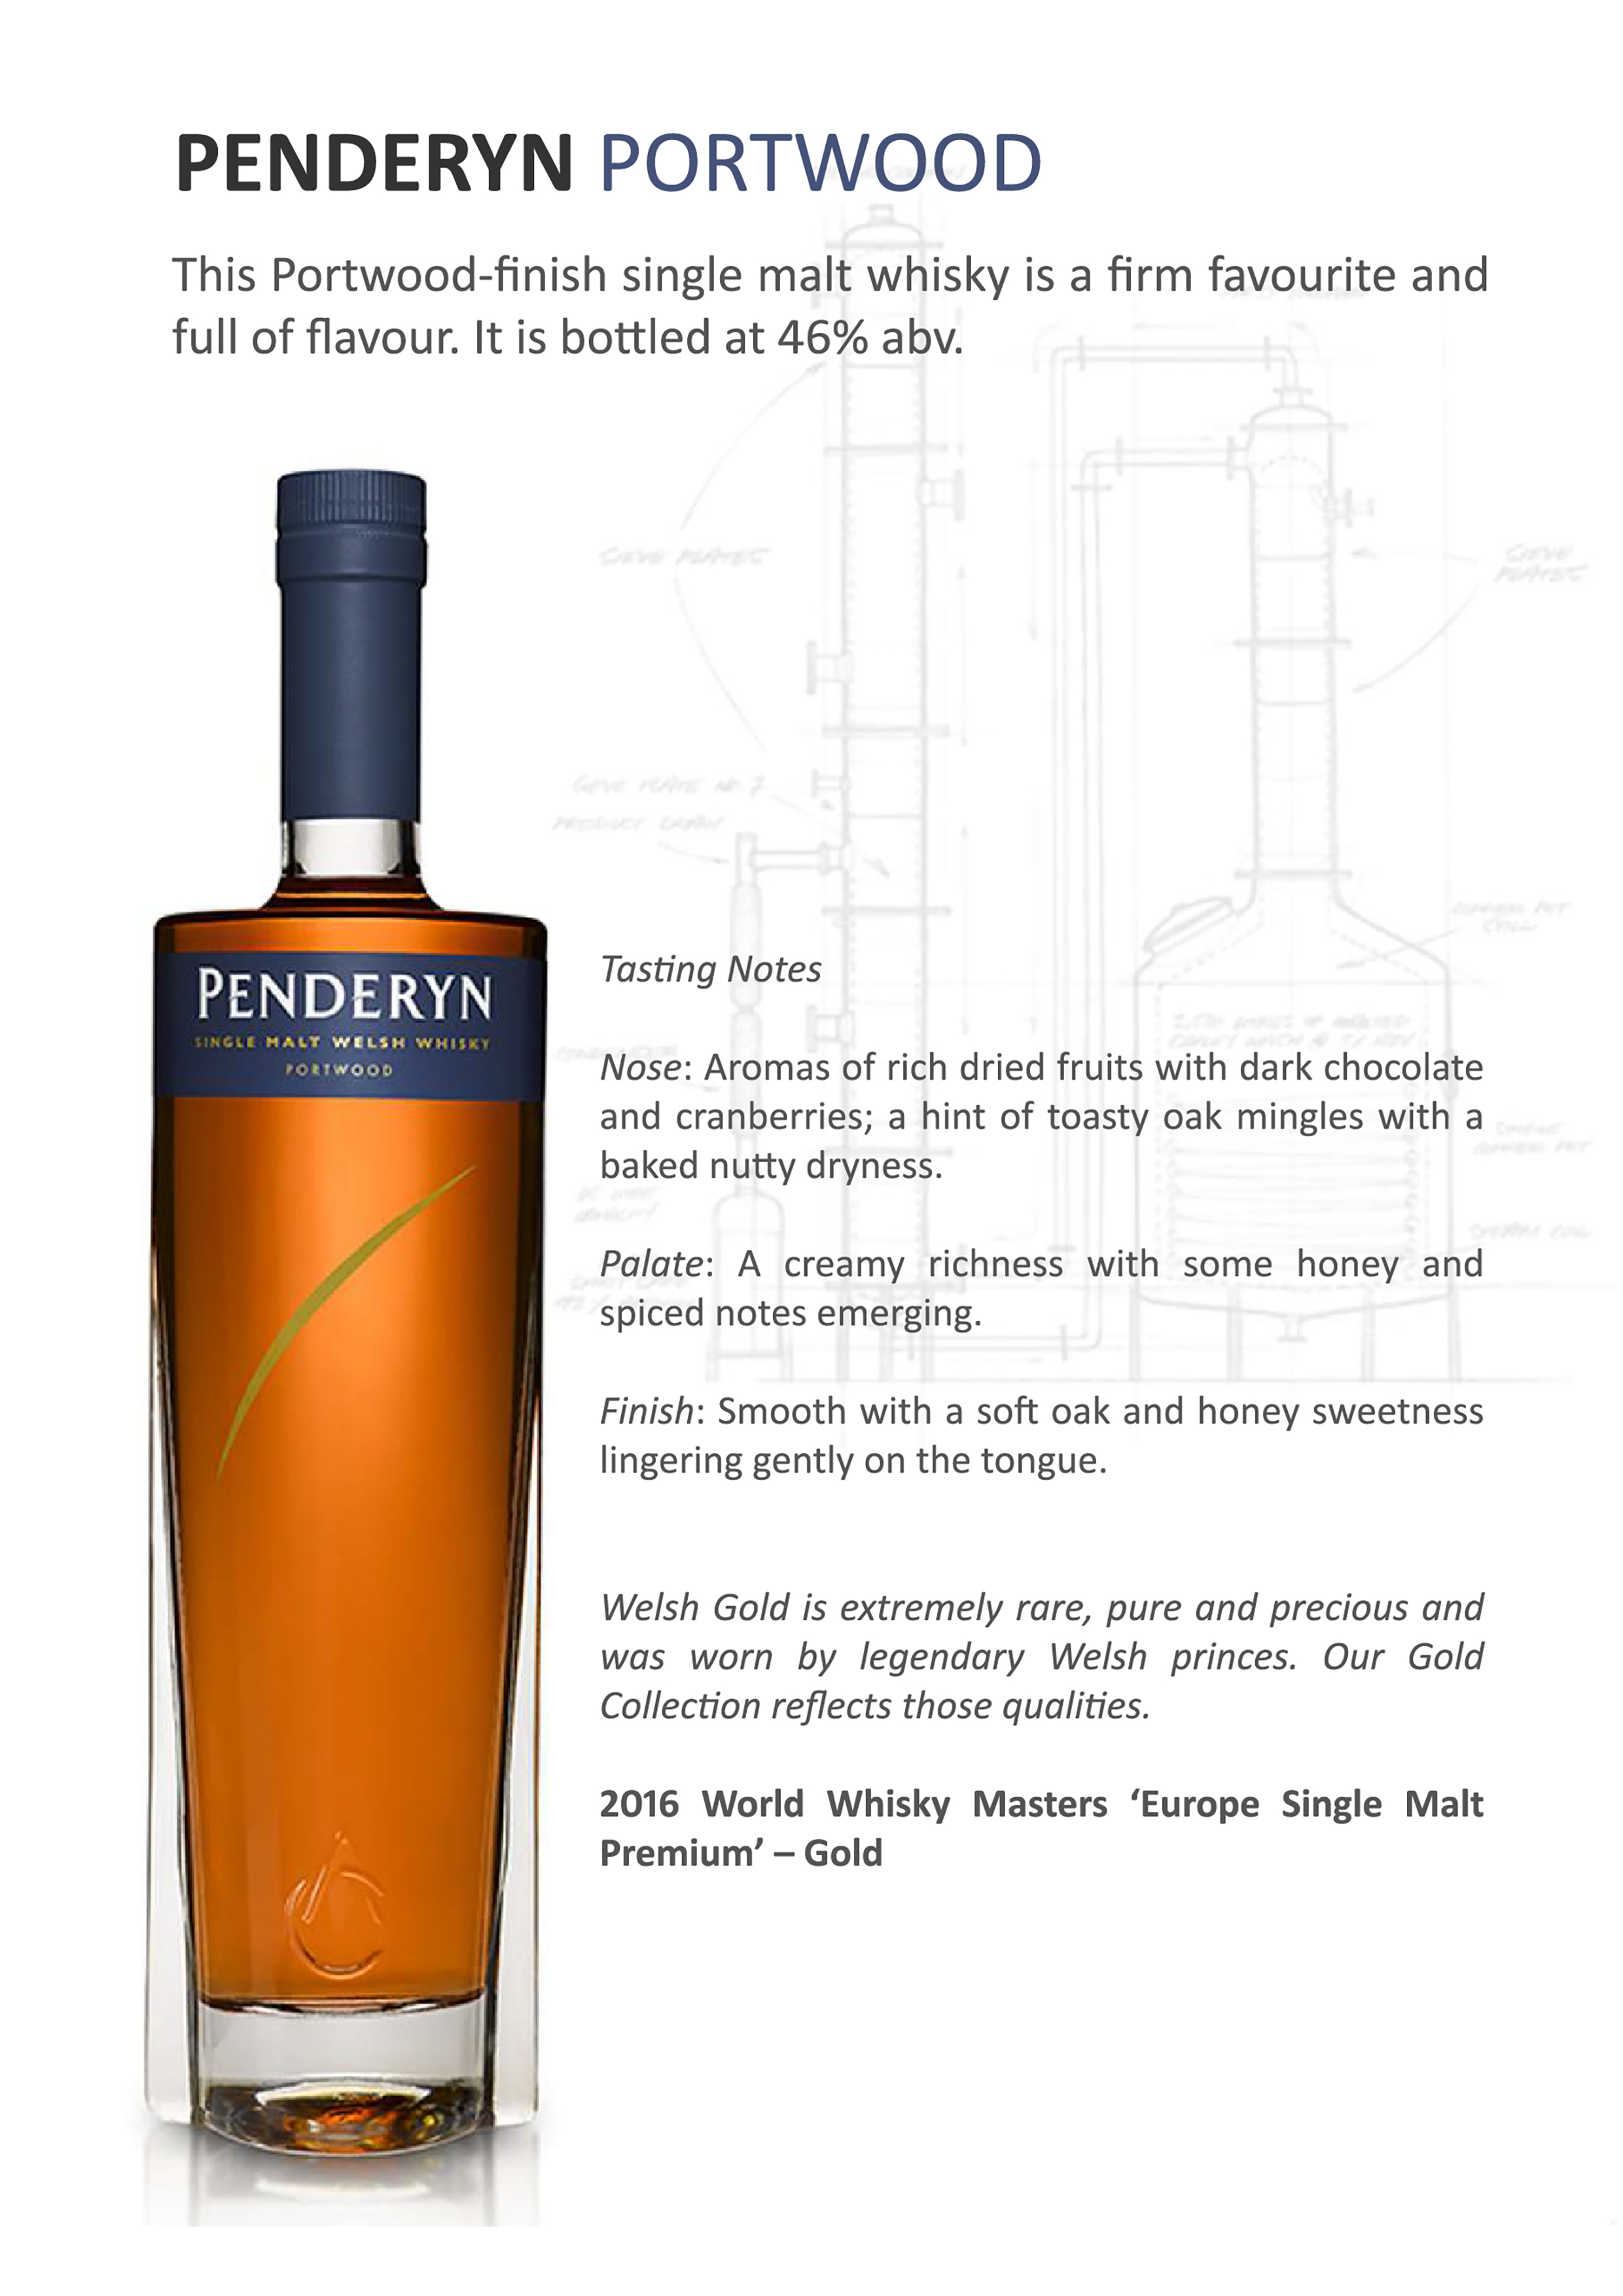 Penderyn Portwood Single Malt Welsh Whisky Tasting Note